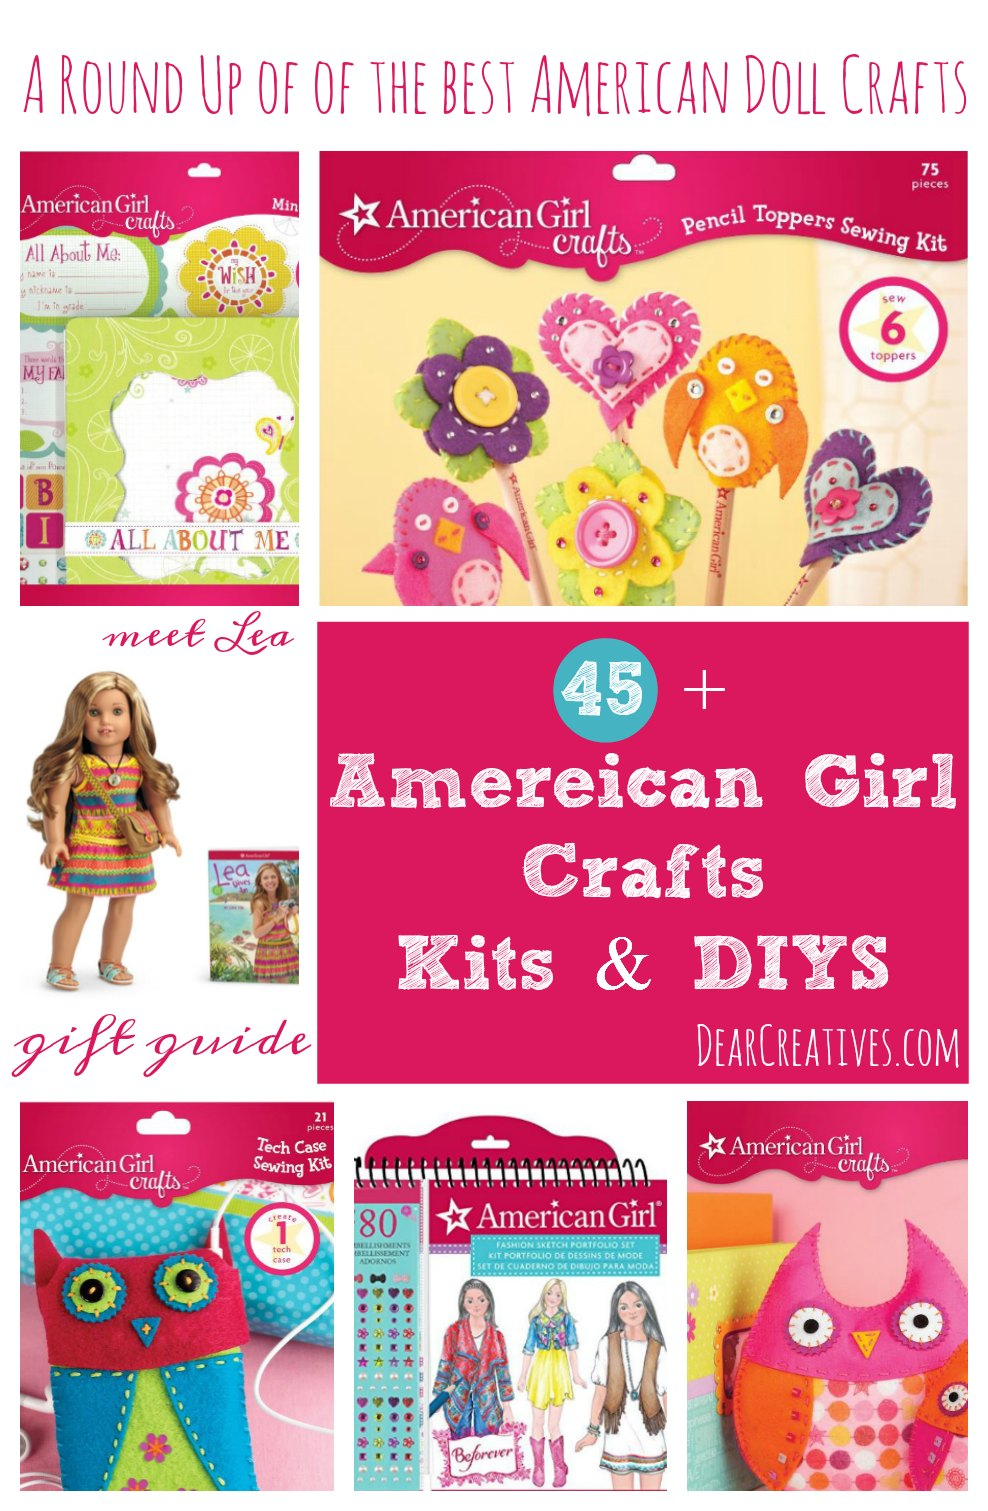 Craft Kits A Round up of the best American Doll Crafts, Craft kits and DIYs for kids to craft with. So many to choose from!